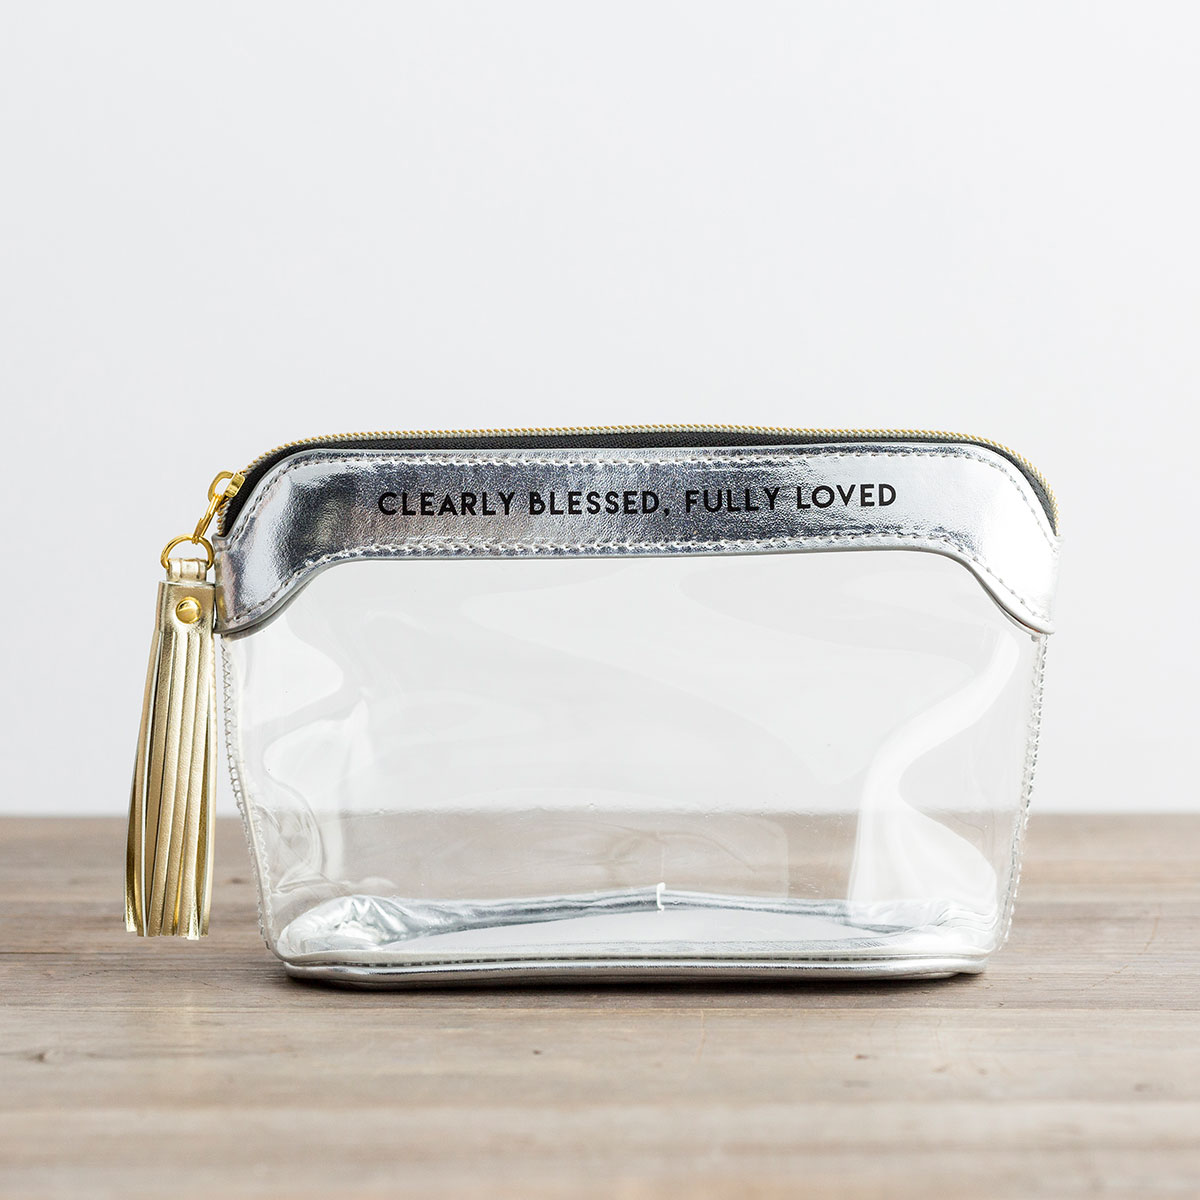 Clearly Blessed, Fully Loved - Clear Travel Pouch